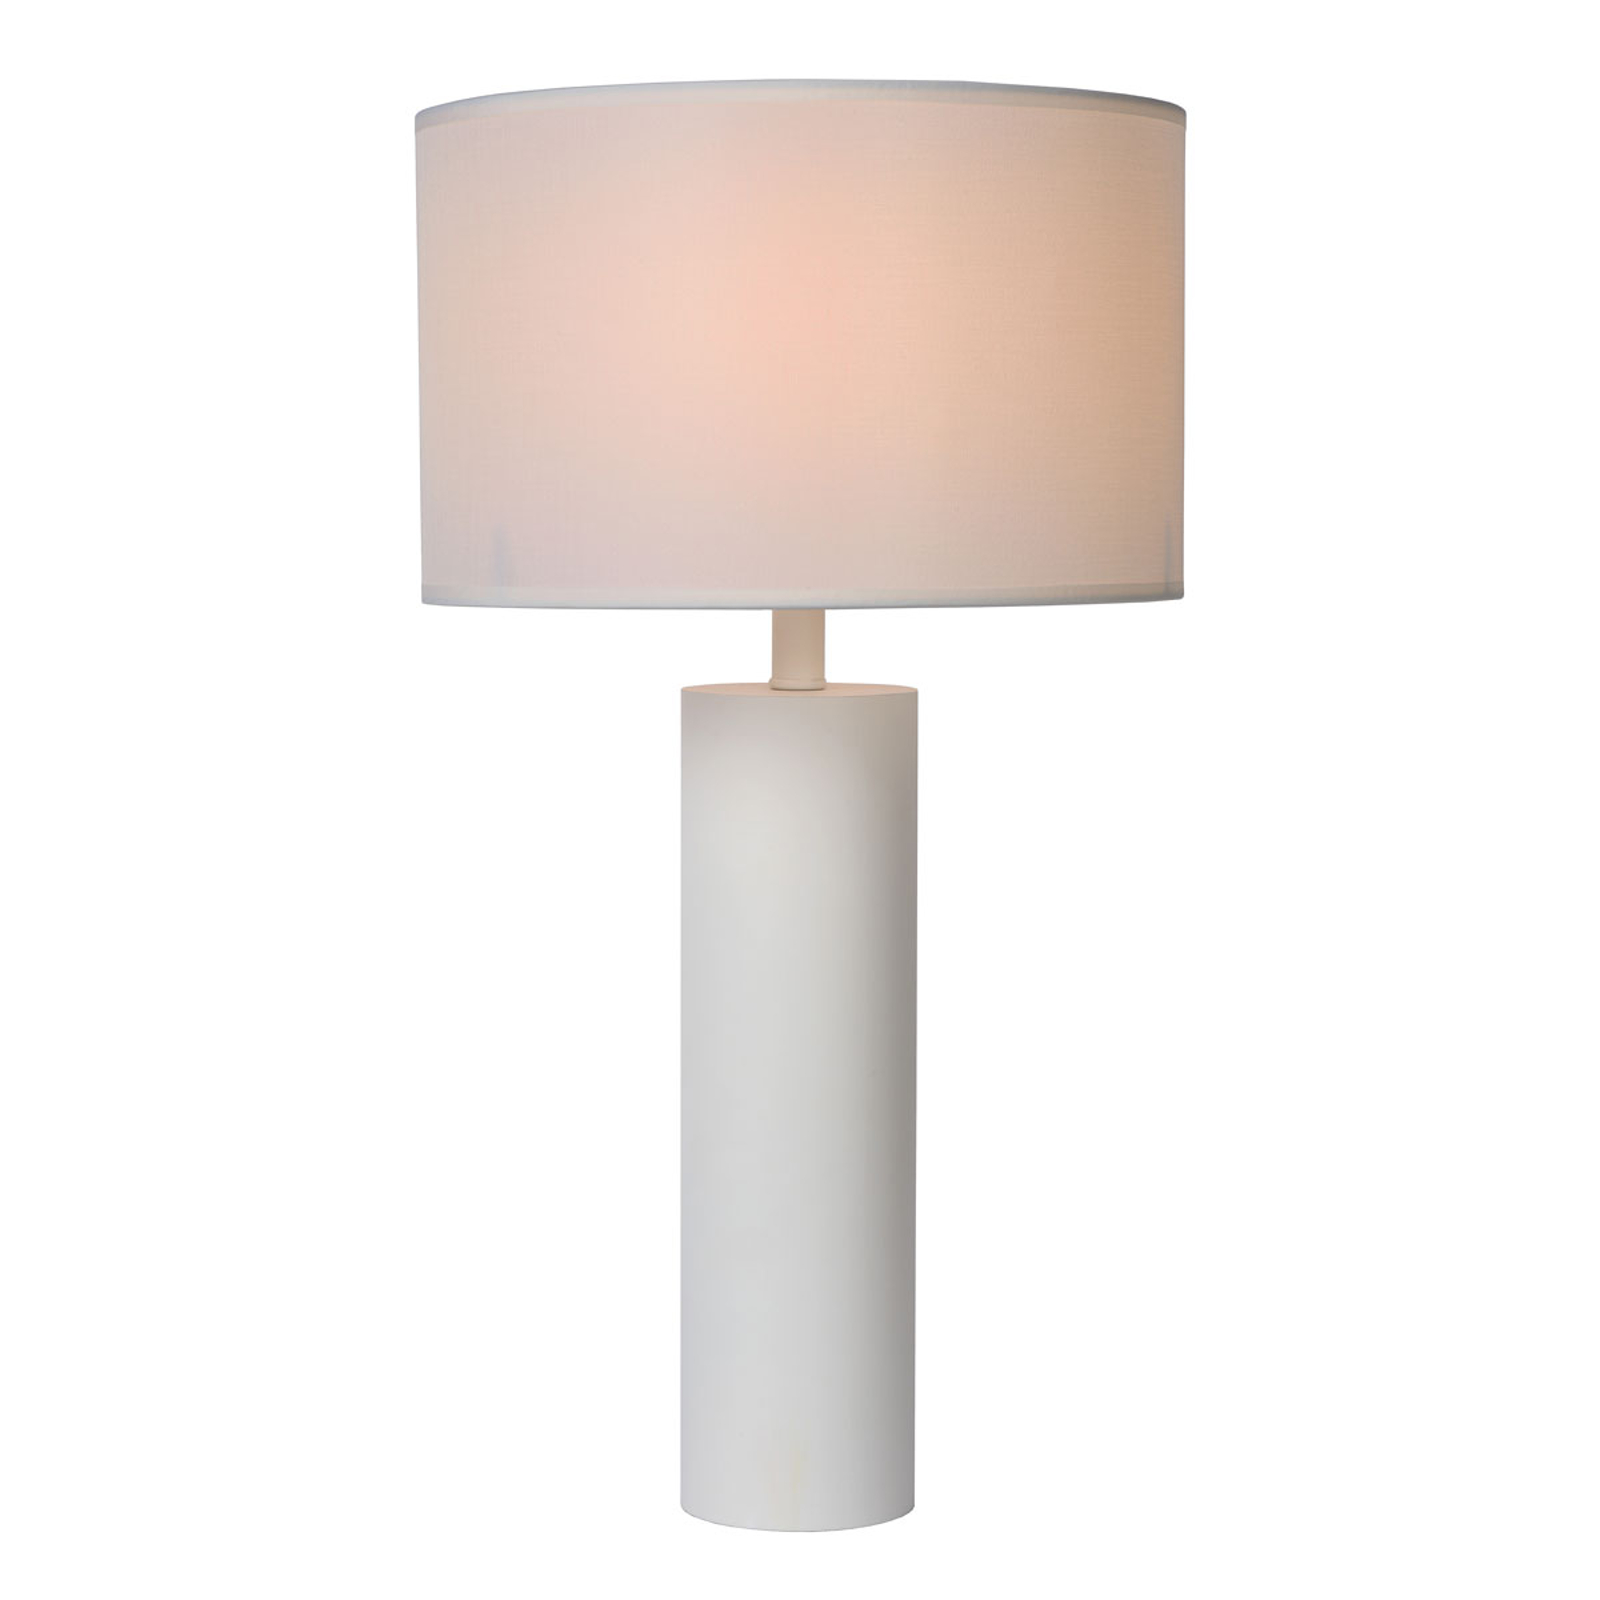 Lampe à poser Yessin, pied cylindrique, blanc